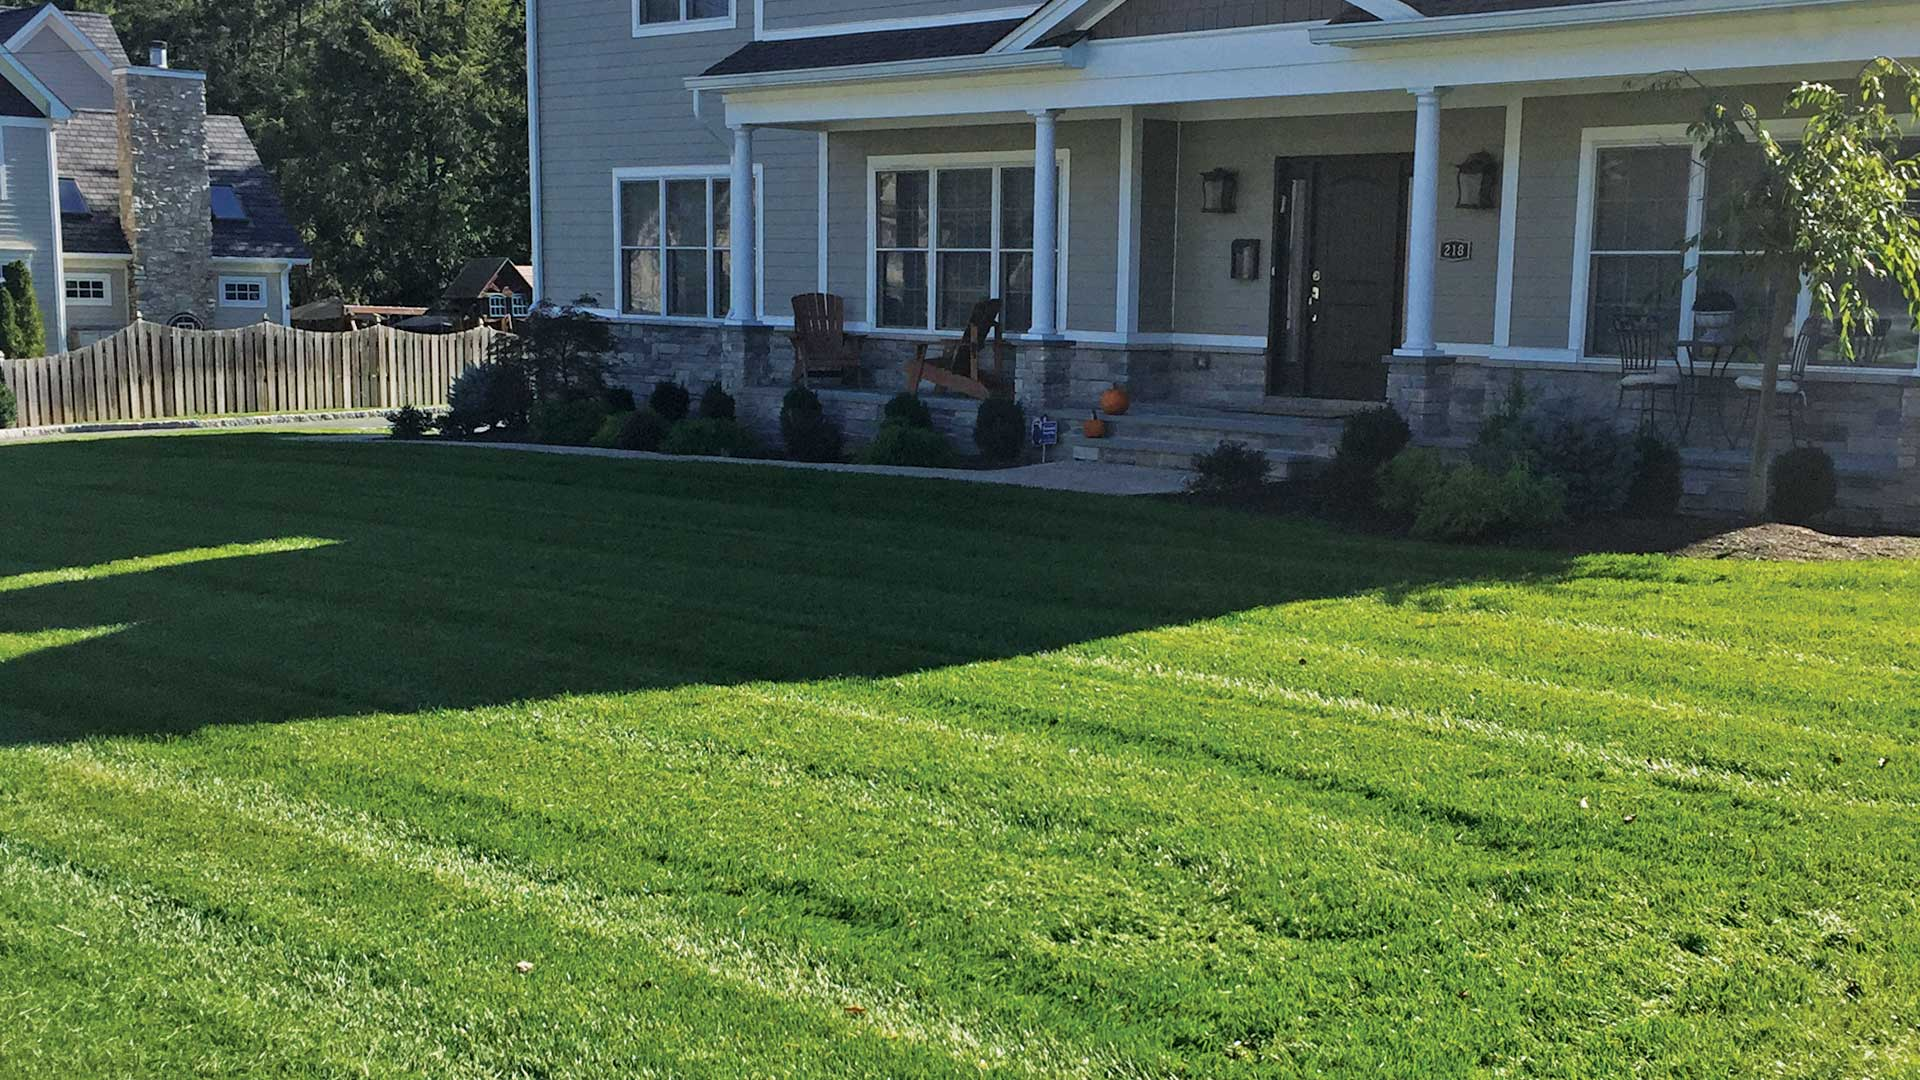 Recently mowed lawn at a home in Westfield, NJ.